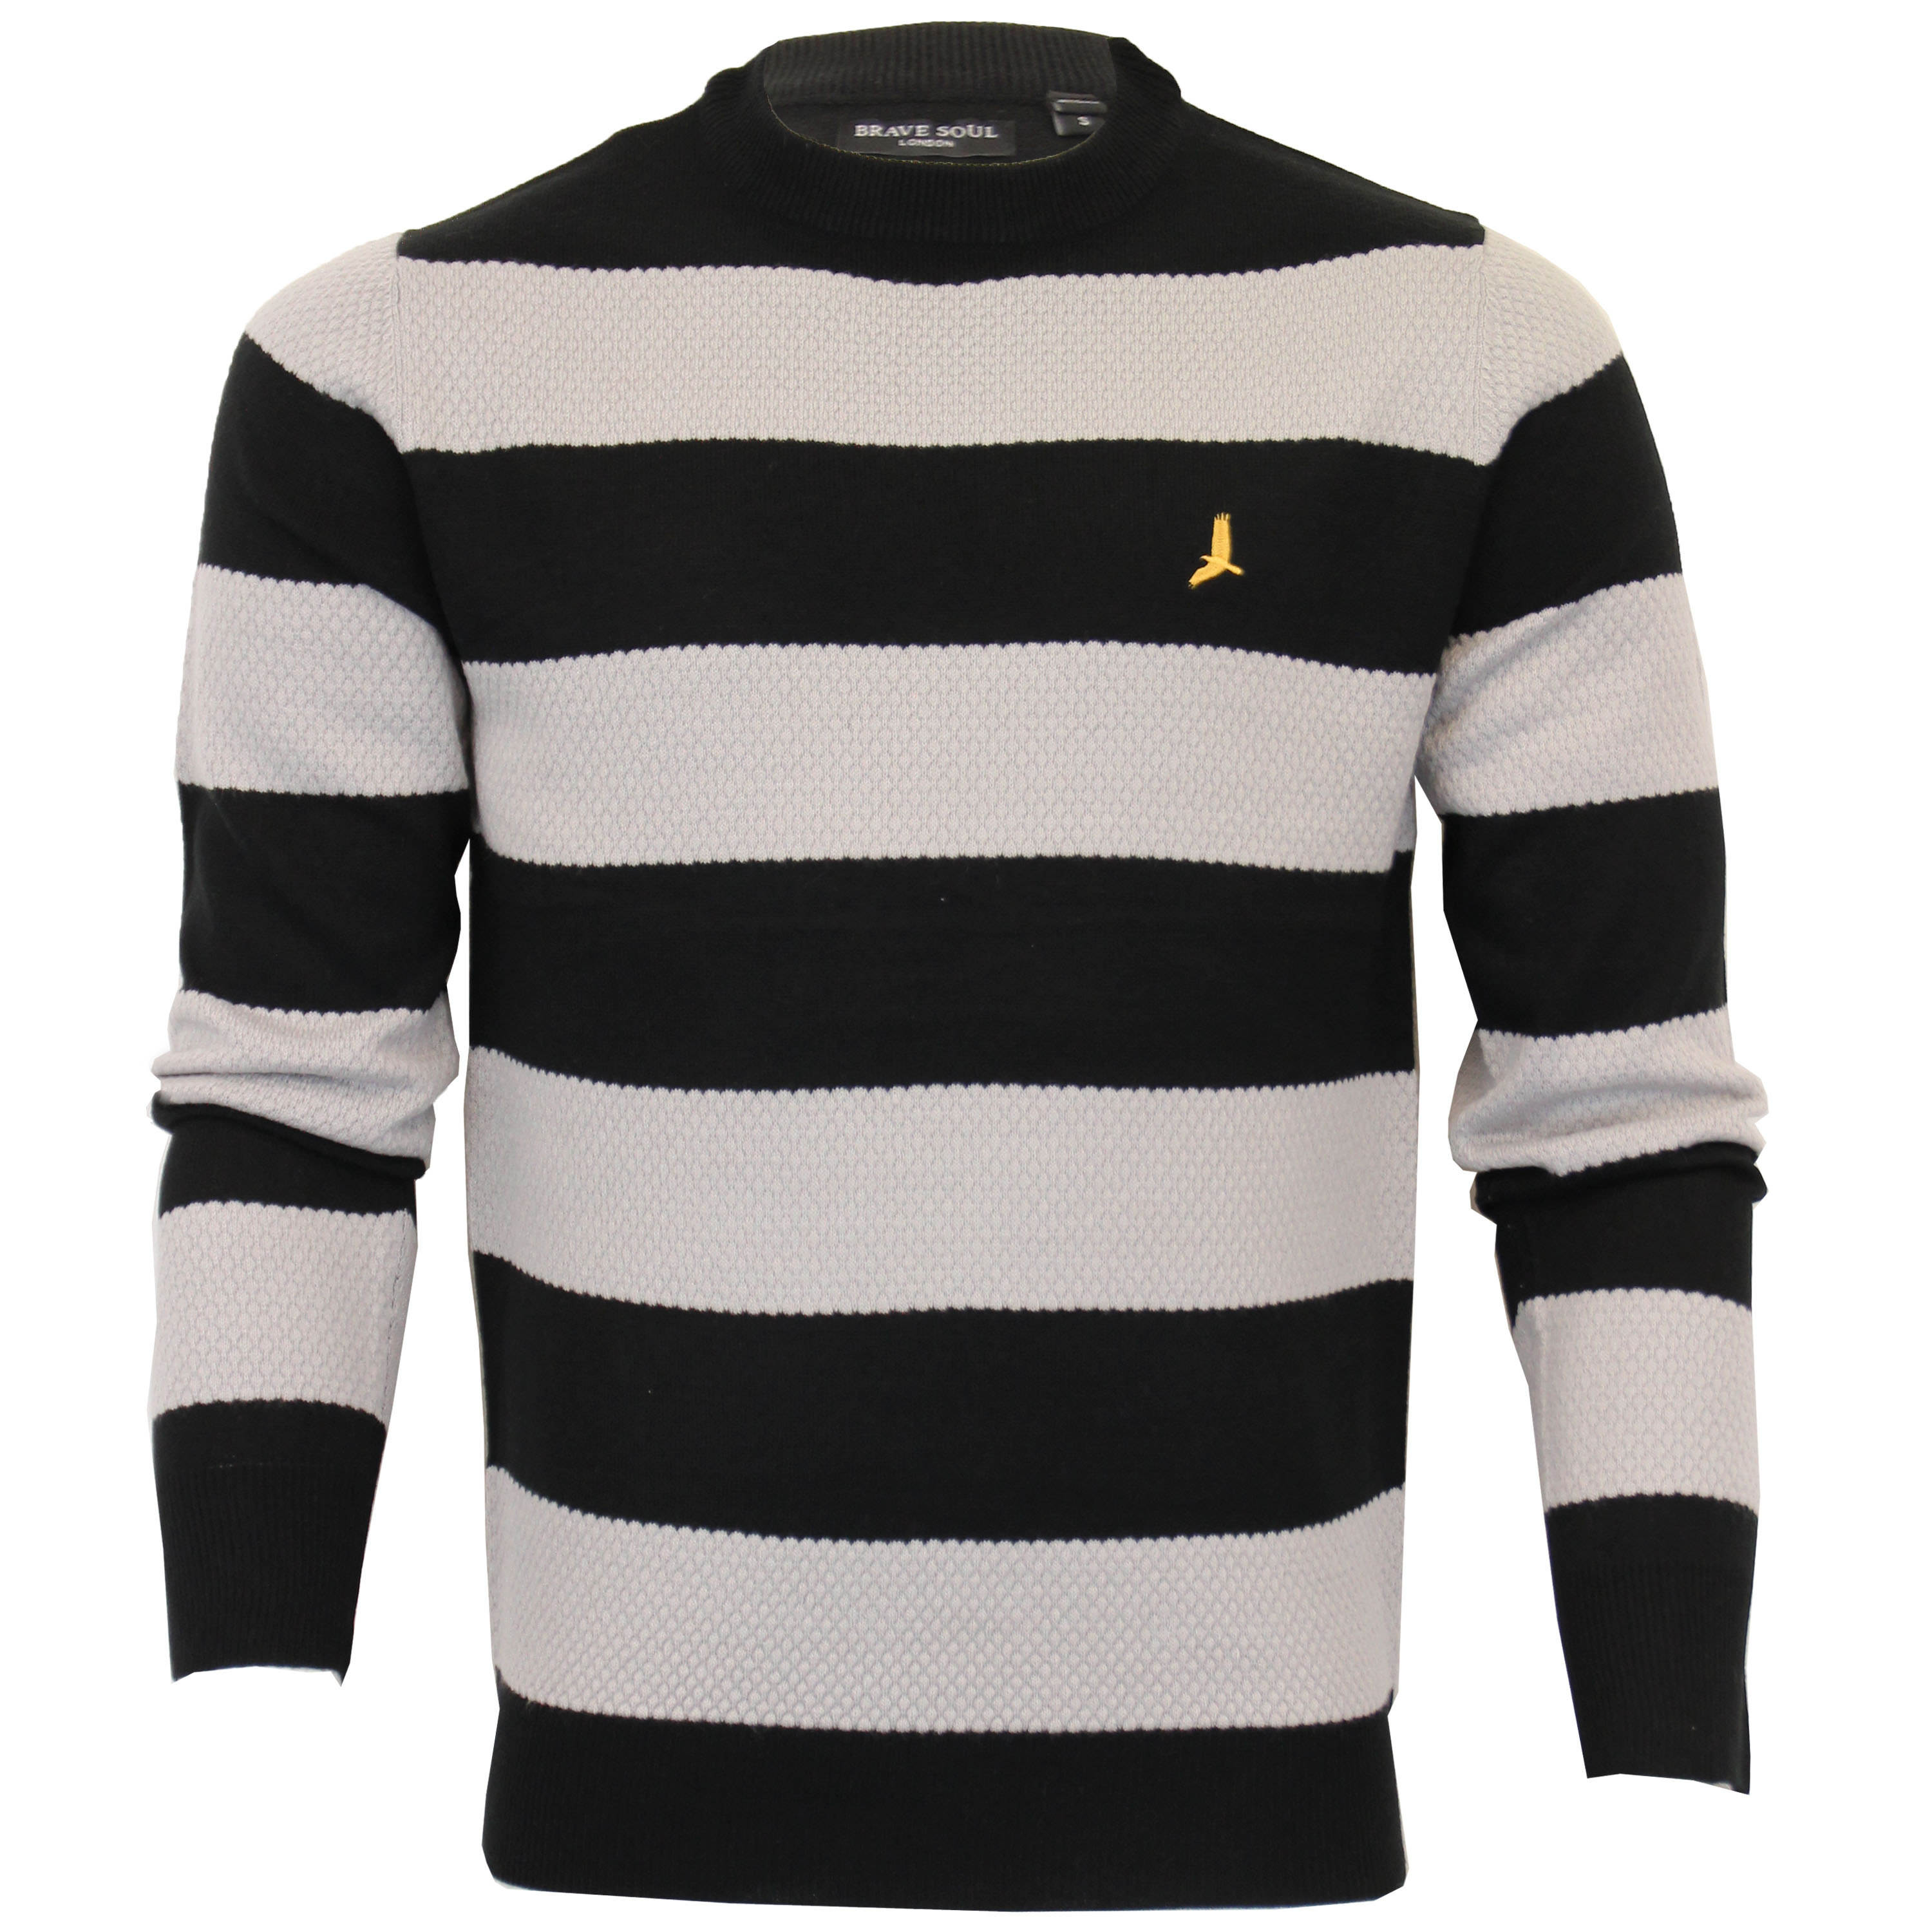 Mens-Jumper-Brave-Soul-Knitted-Sweater-Pullover-GOODWIN-Crew-Neck-Top-Winter-New thumbnail 2